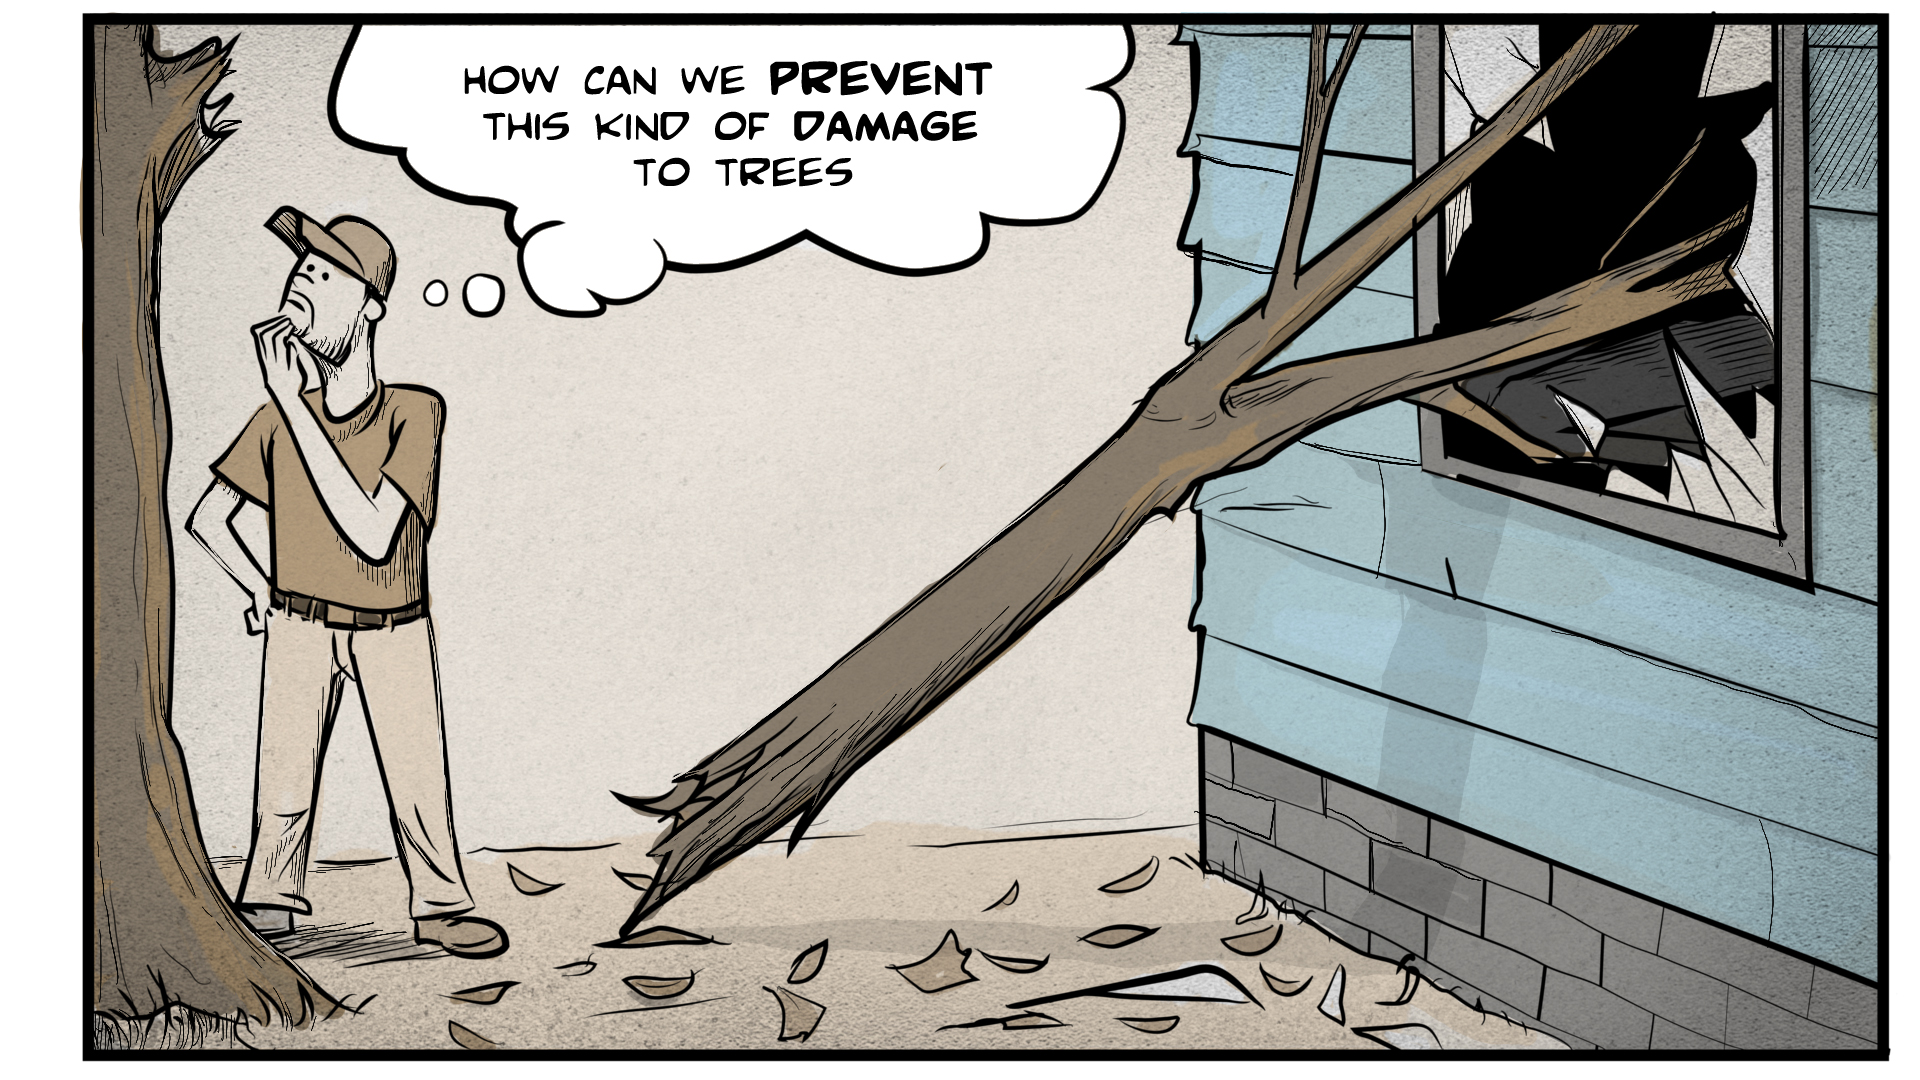 """Danny stands scratching his chin, looking at a broken tree branch which has smashed through a window. He thinks to himself, """"How can we prevent this kind of damage to trees?"""""""